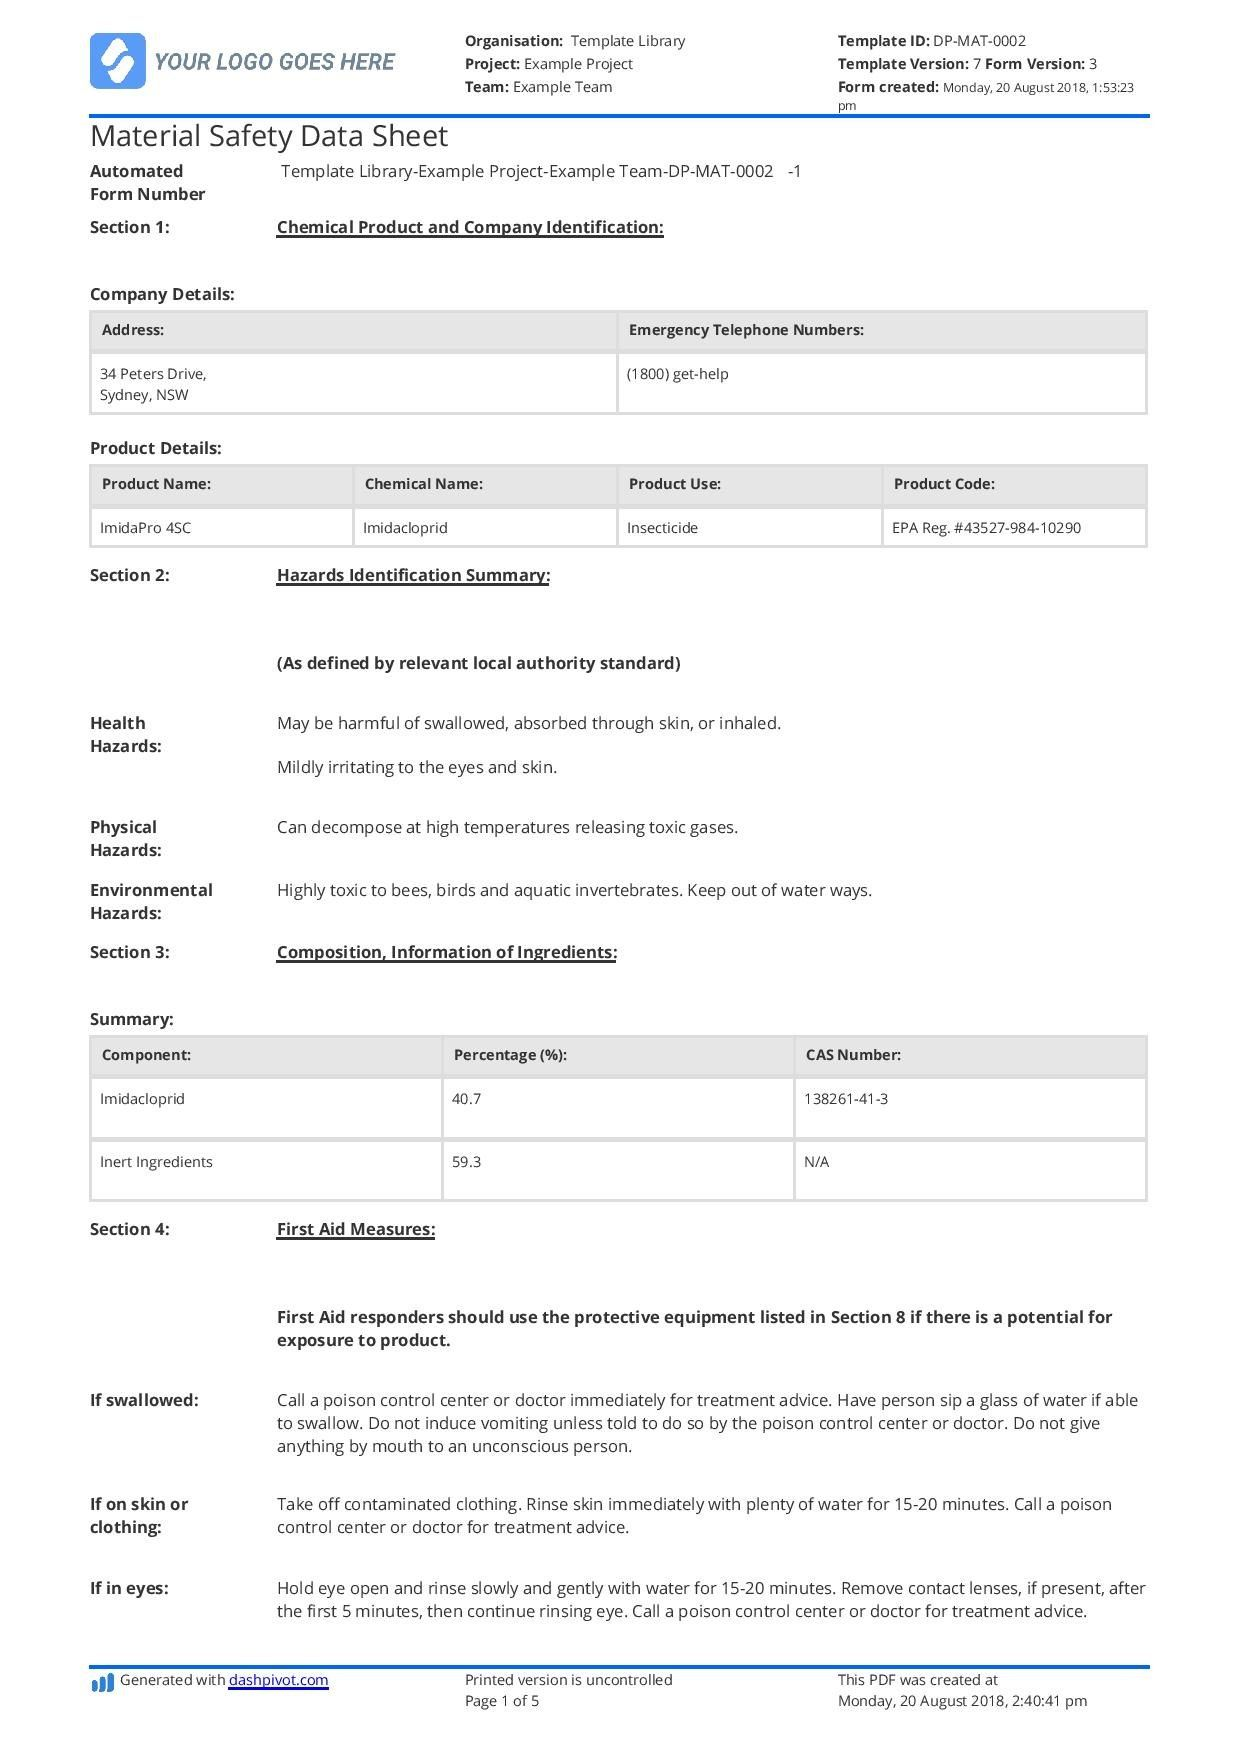 Free Material Safety Data Sheet Template Better Than Wordexcelpdf In Ohs Incident Report Template Free 10 Profe Data Sheets Best Templates Business Template